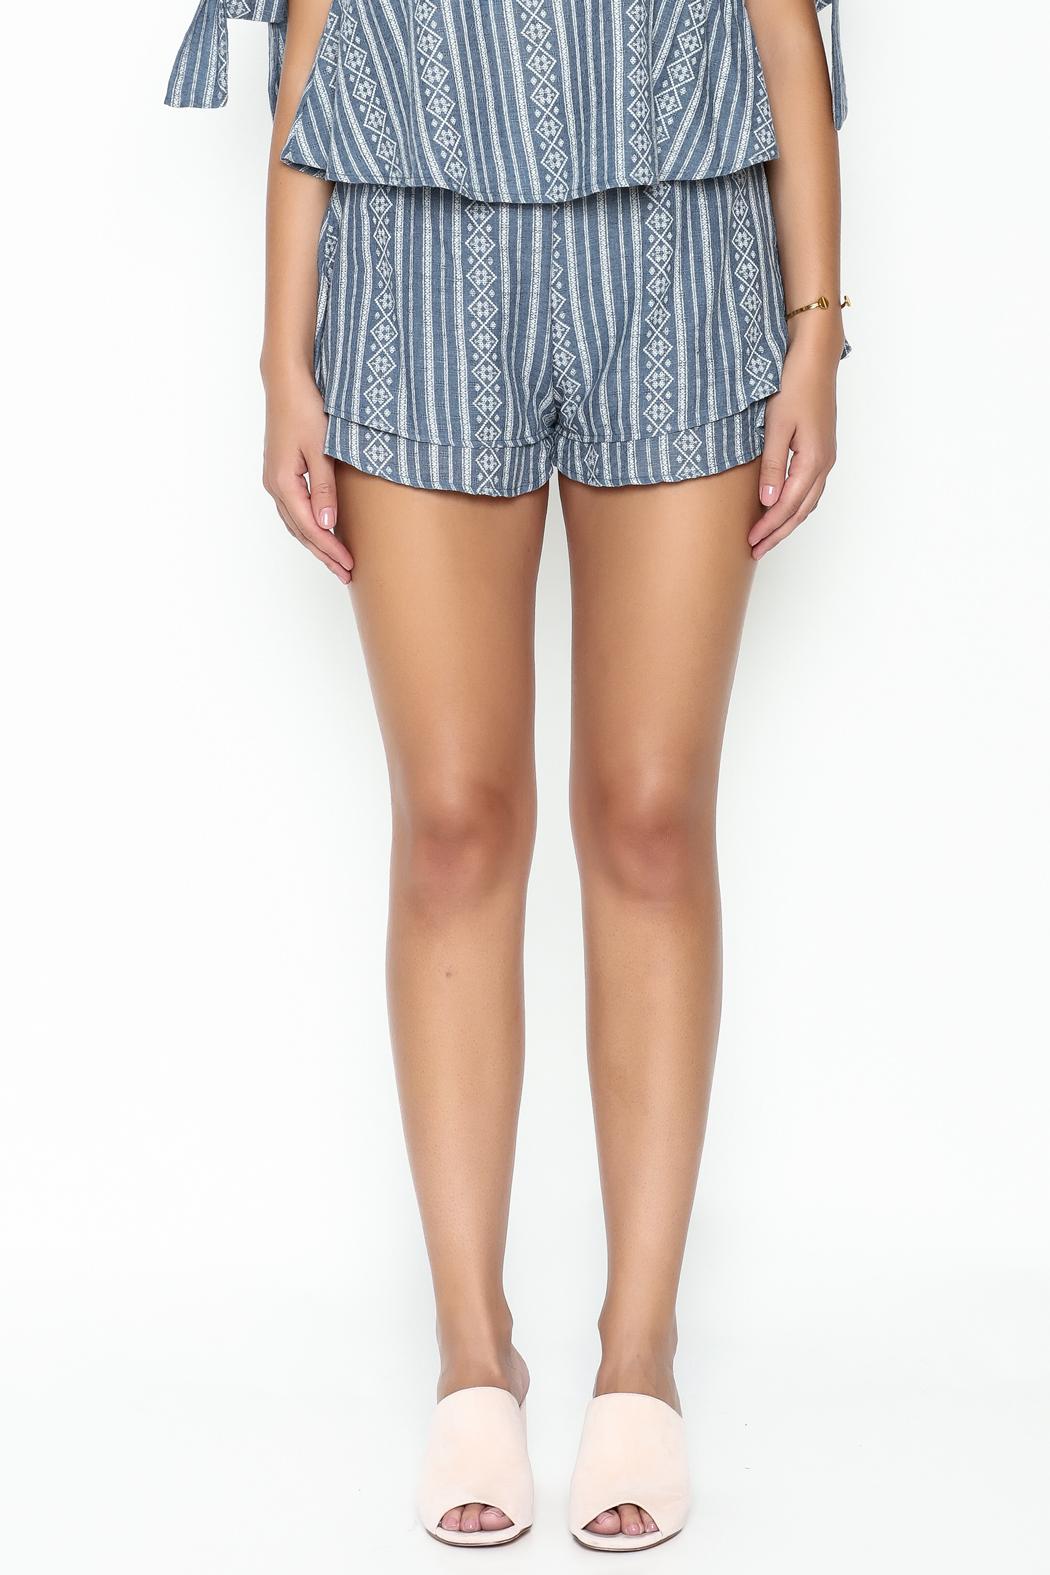 SAGE THE LABEL Blue Print Shorts - Front Full Image